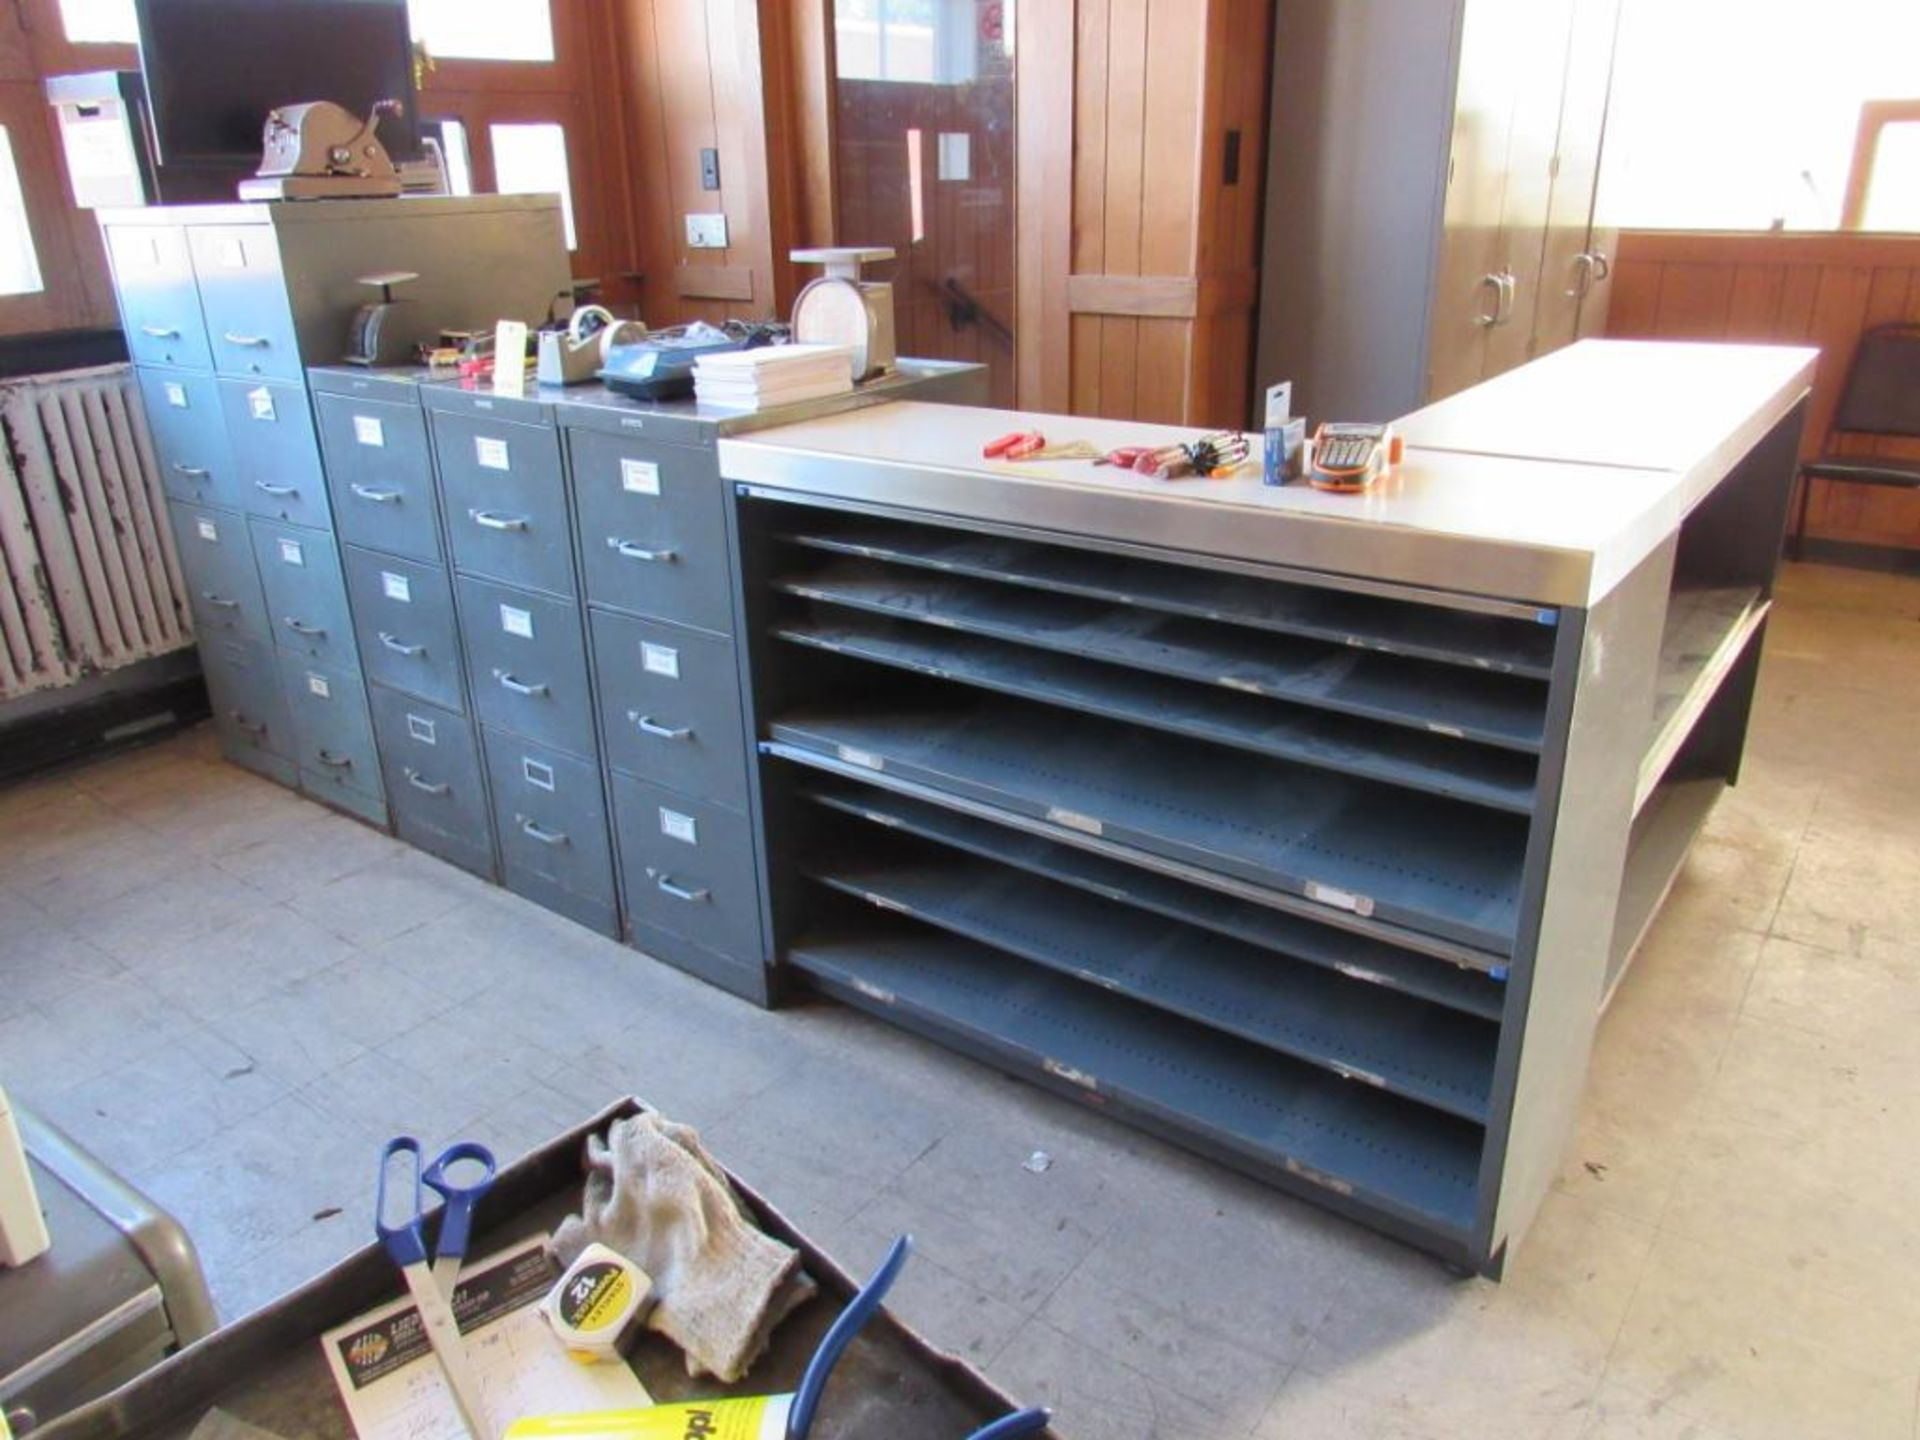 Lot 243 - LOT: (2) 4-Drawer File Cabinets, (3) 3-Drawer File Cabinets, (2) Cabinets